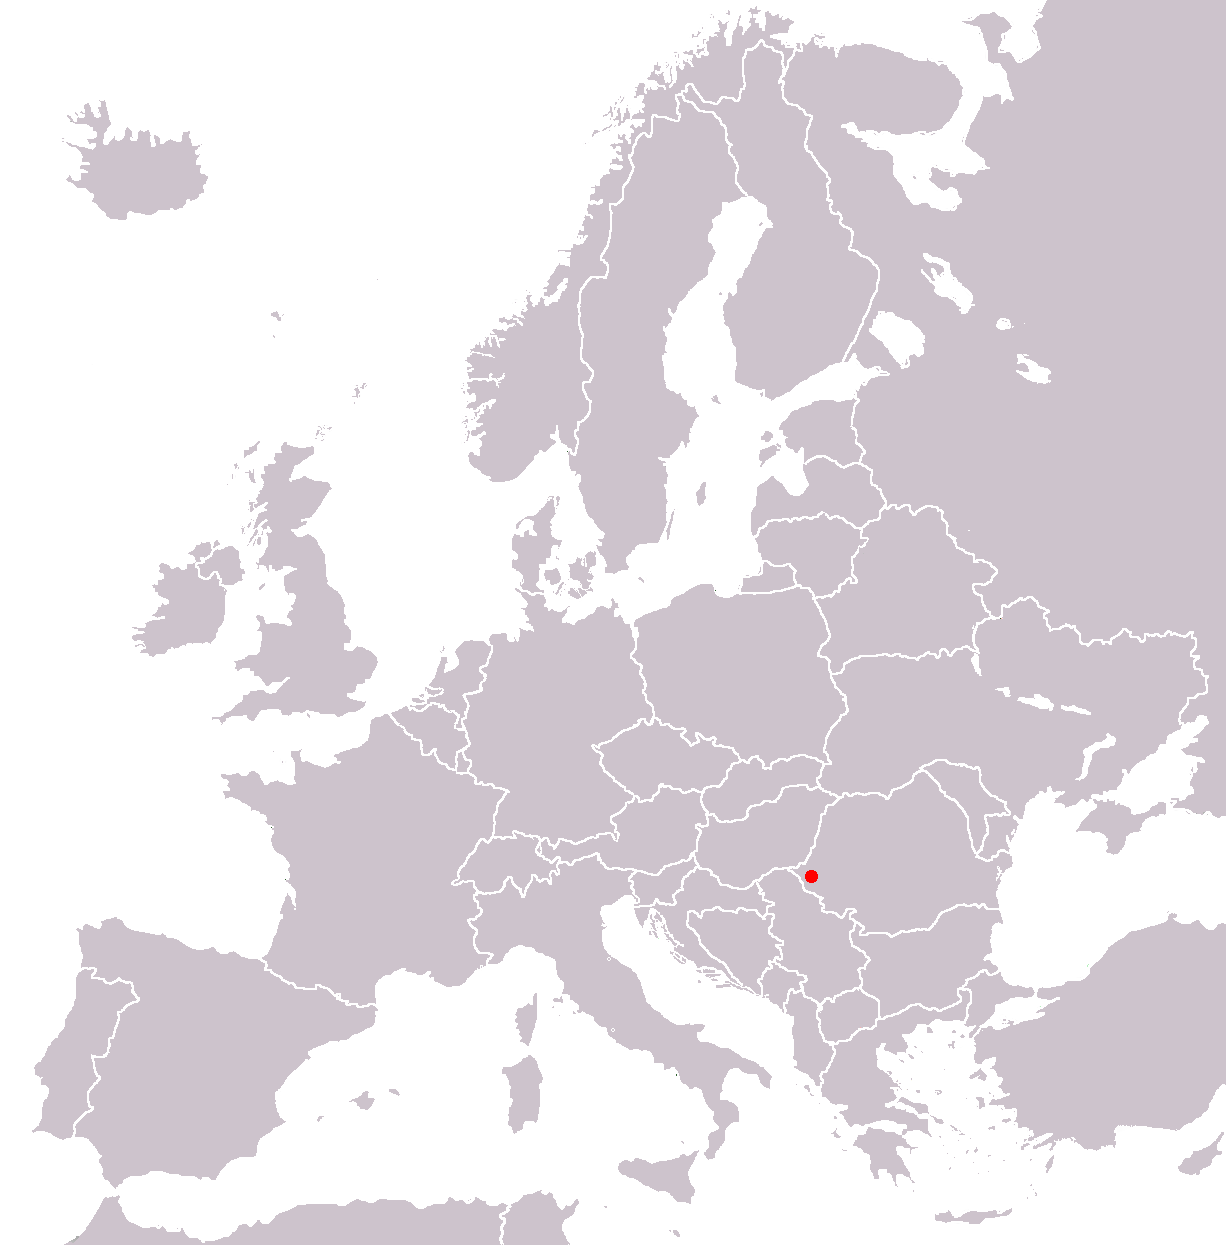 File:Timisoara in Europe.png.